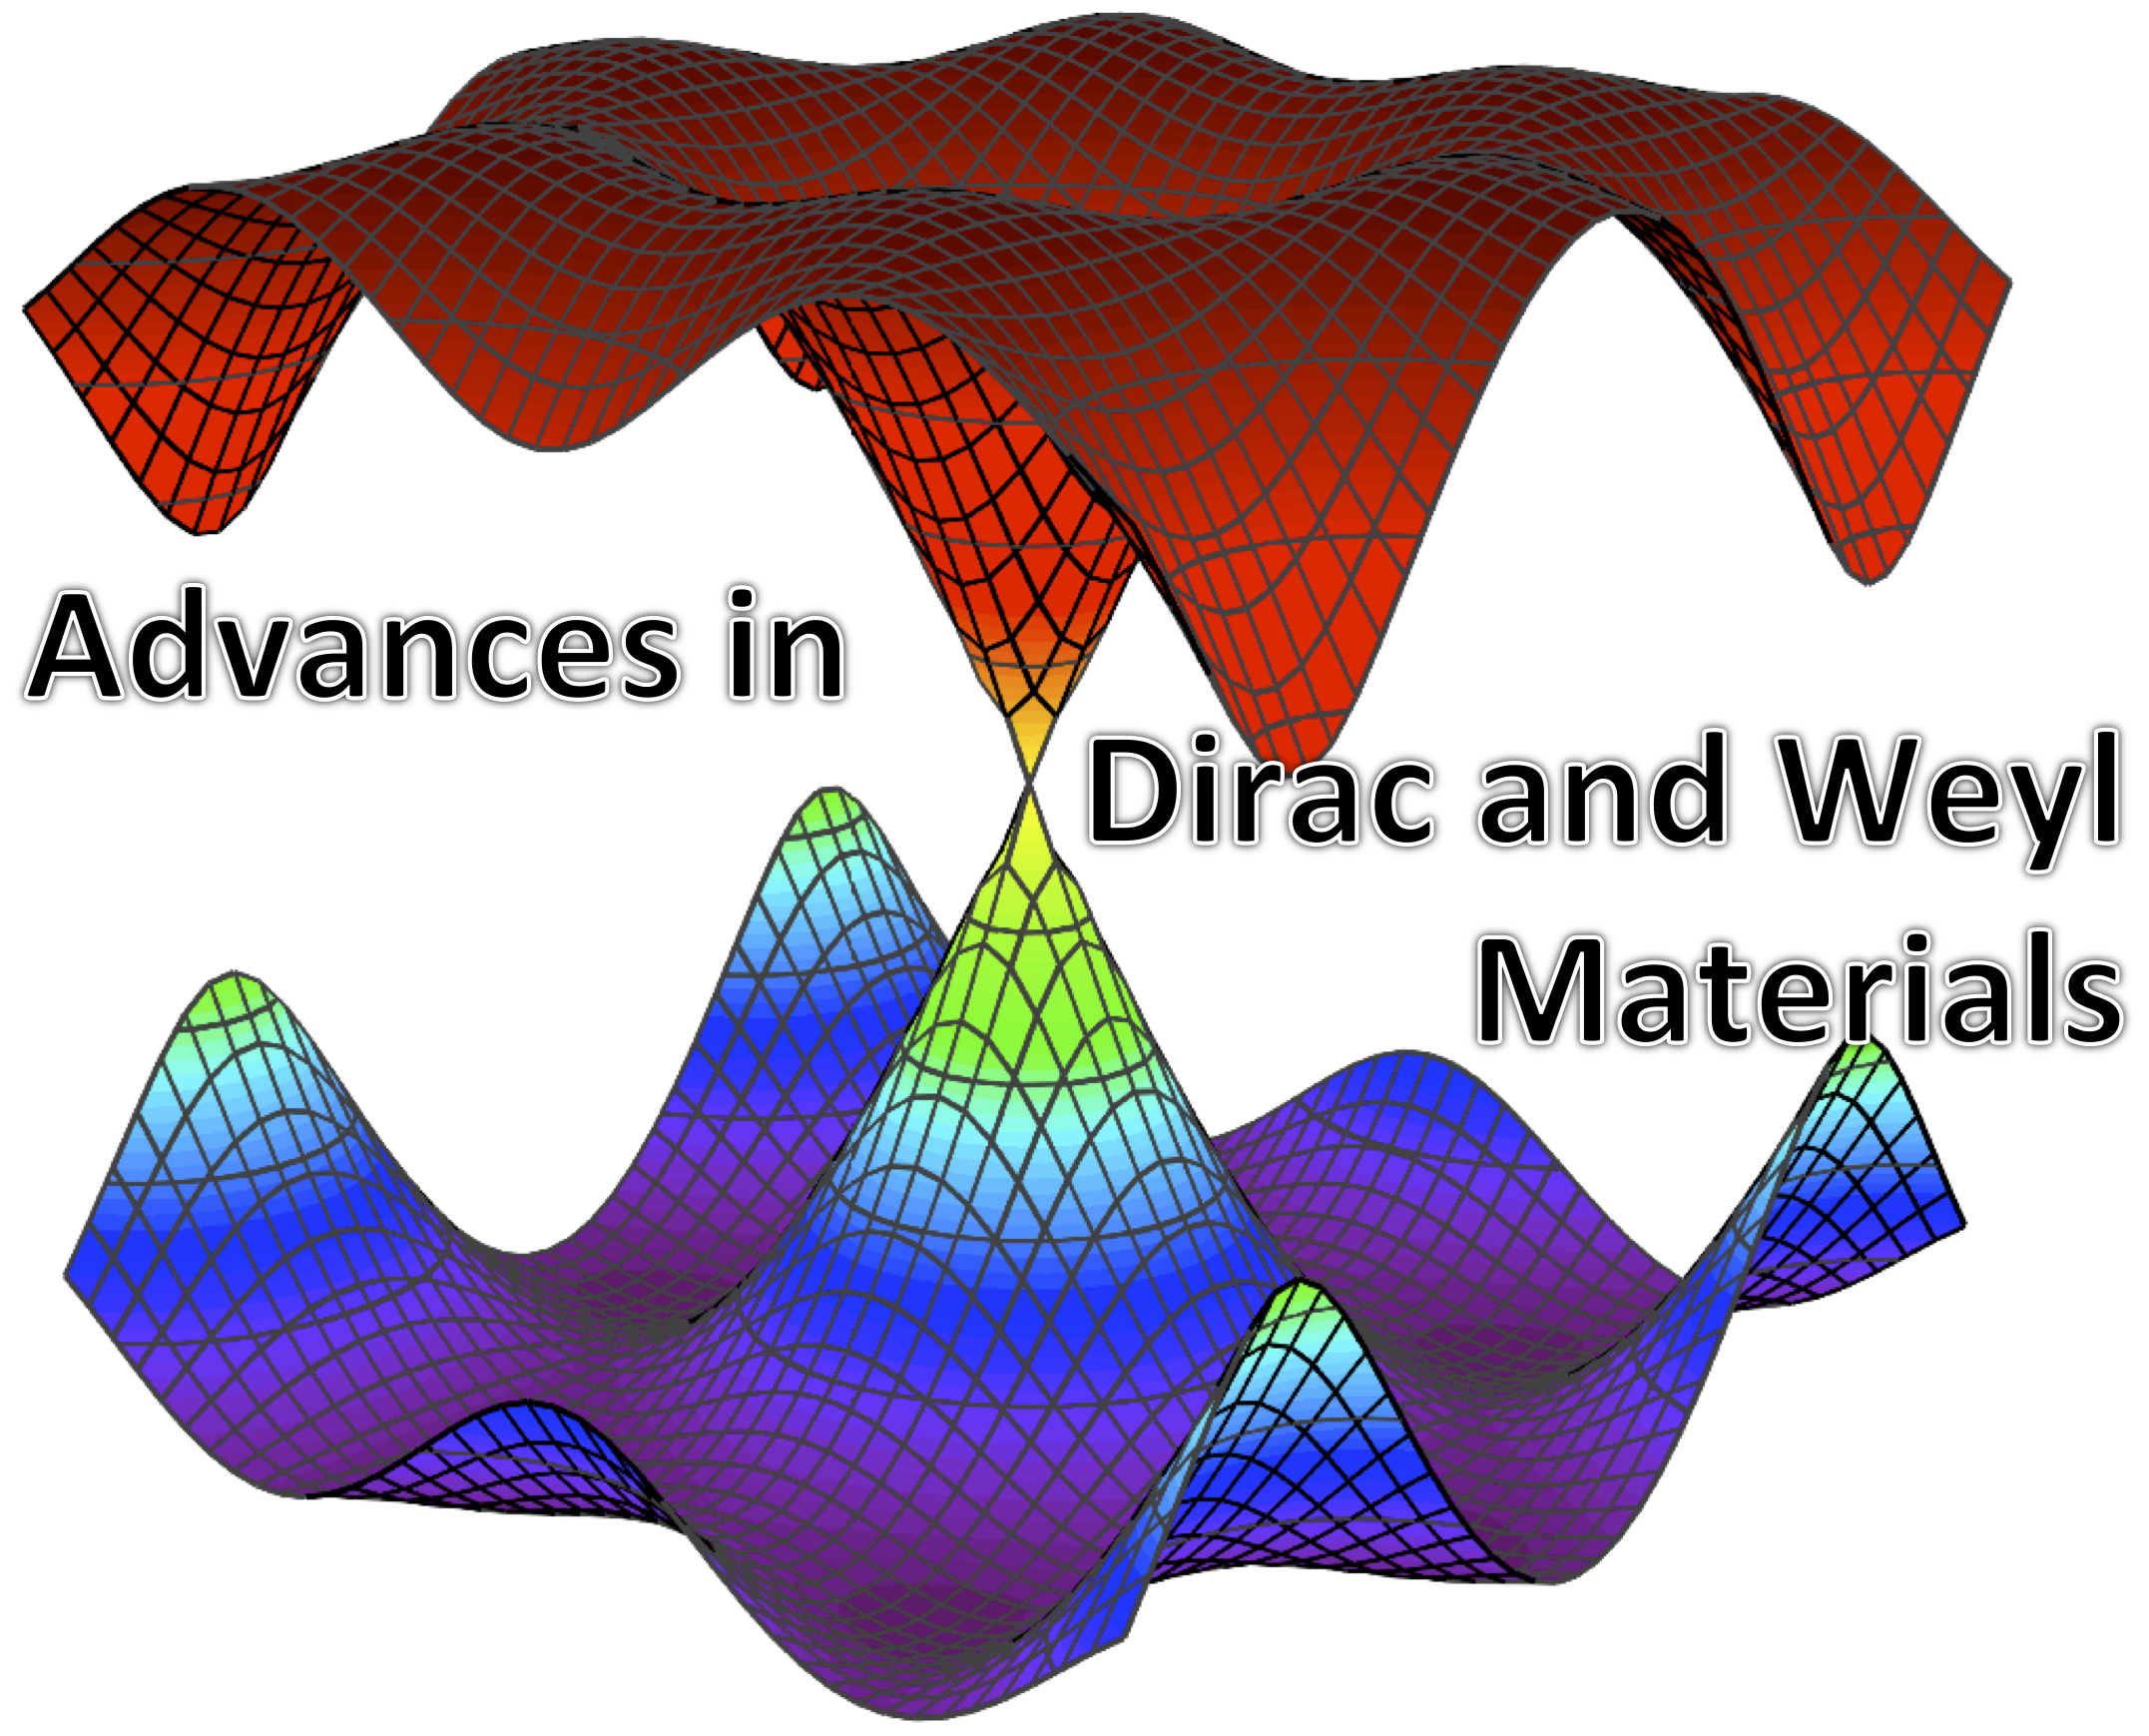 Advances in Dirac and Weyl Material - light waves